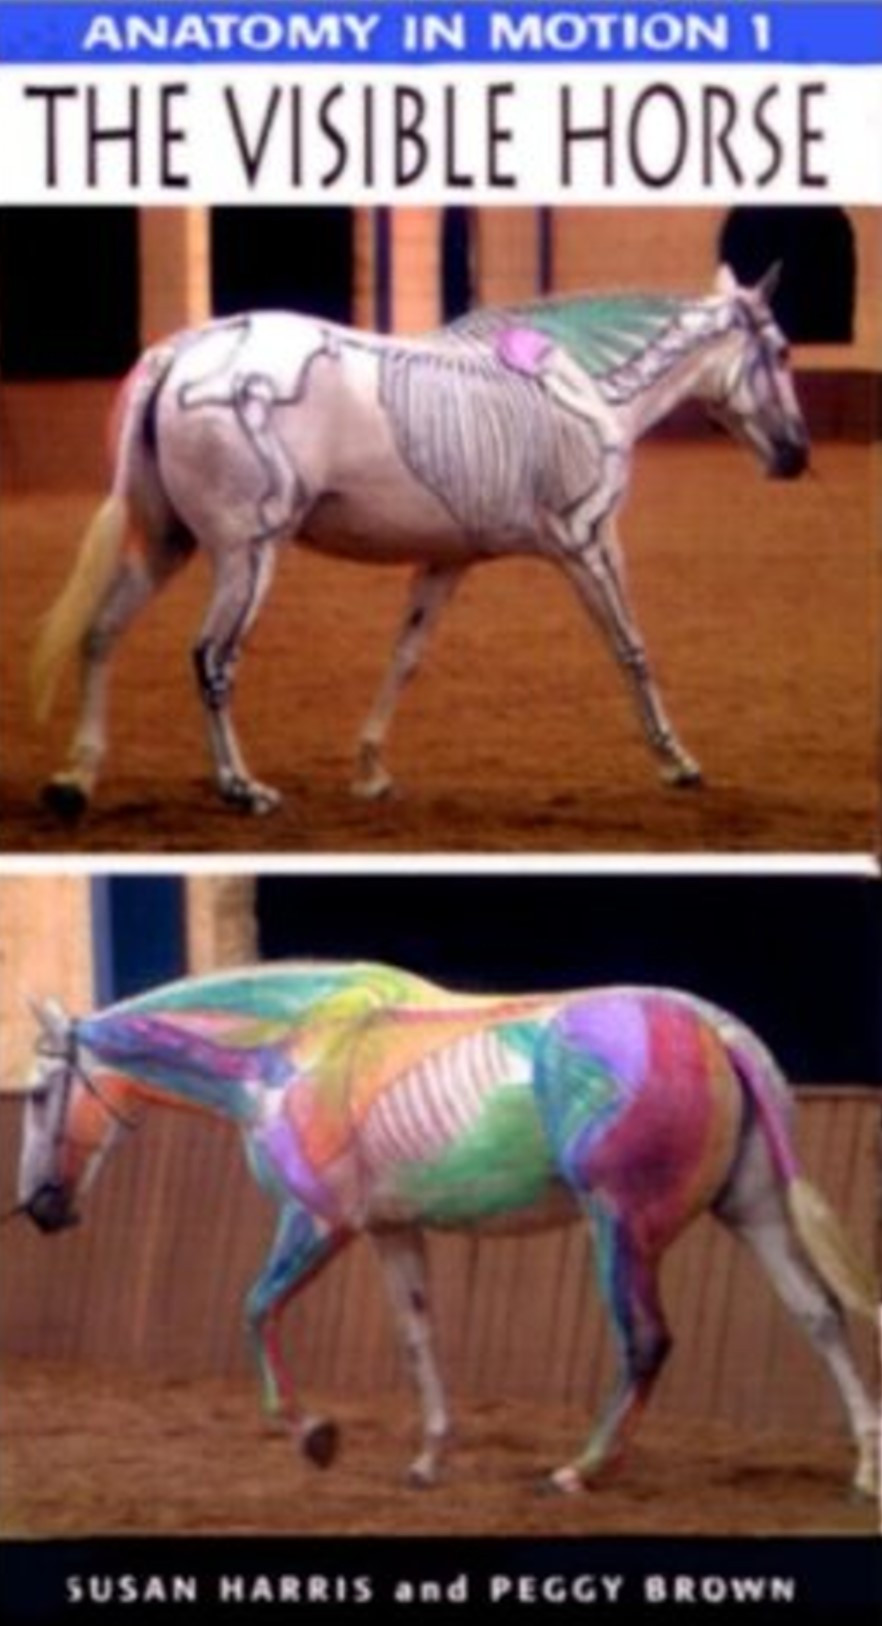 Anatomy In Motion I: The Visible Horse DVD